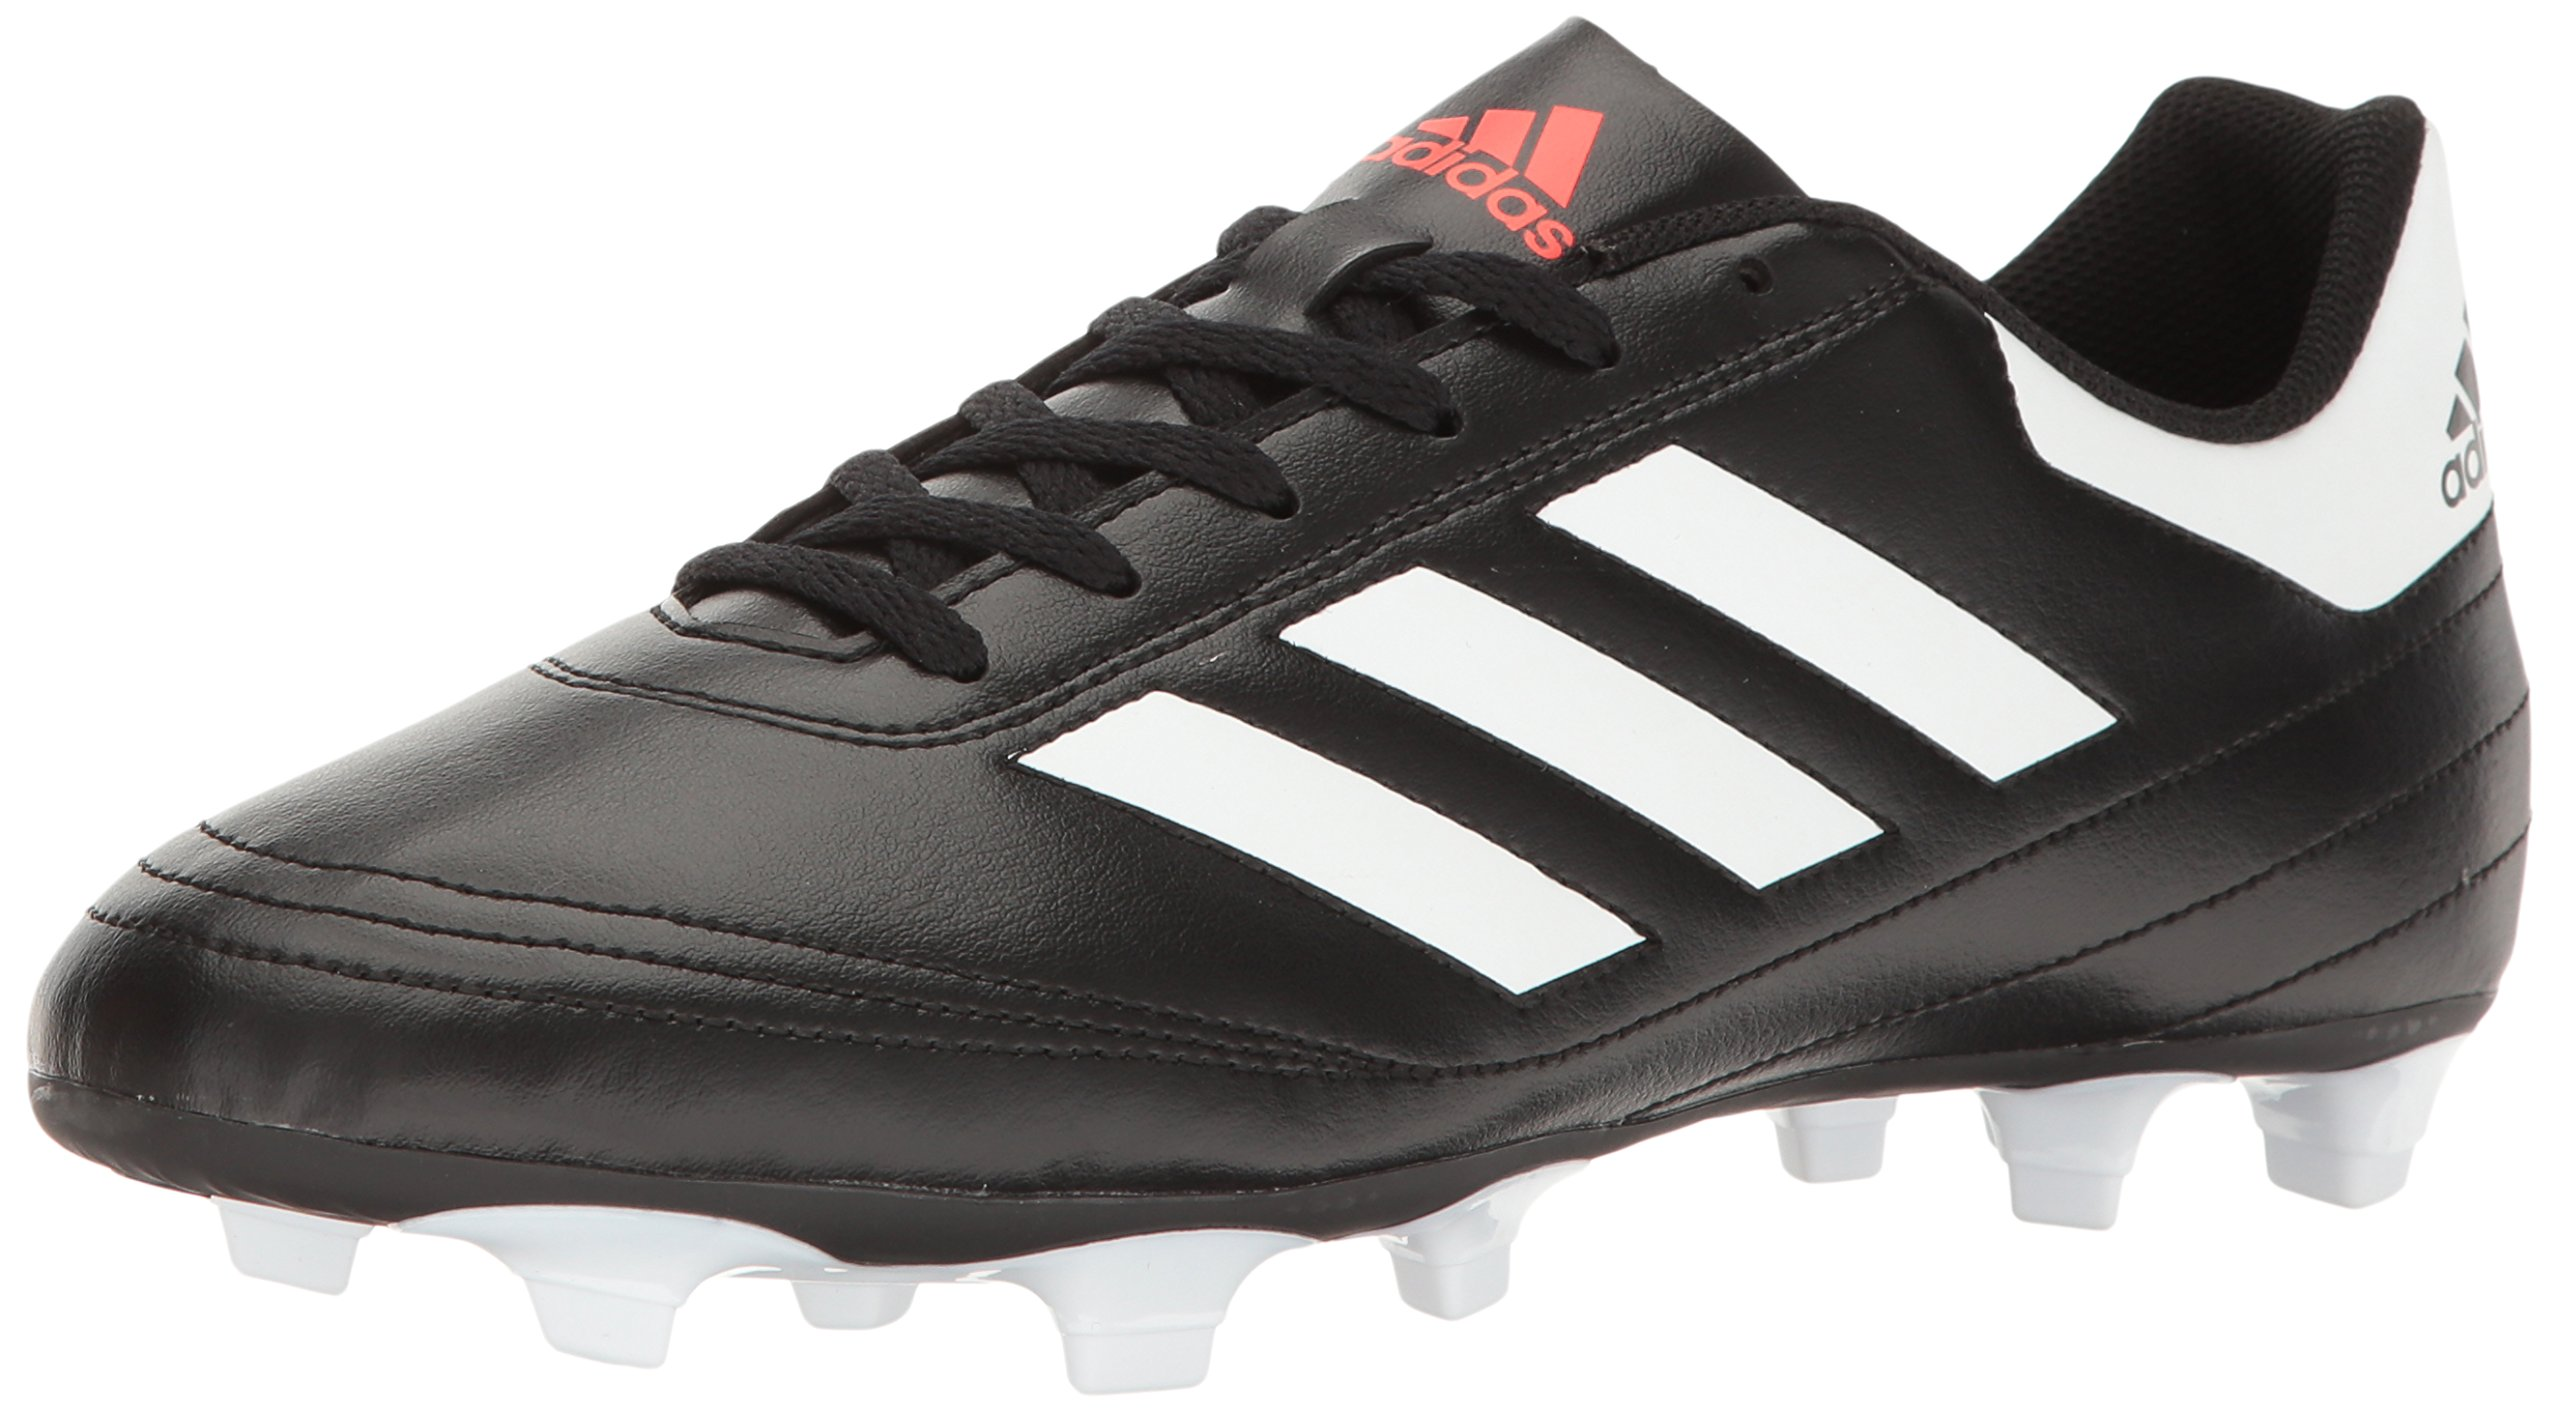 adidas Men's Goletto VI Firm Ground Soccer Shoe, Black/White/Solar red, 10 M US by adidas